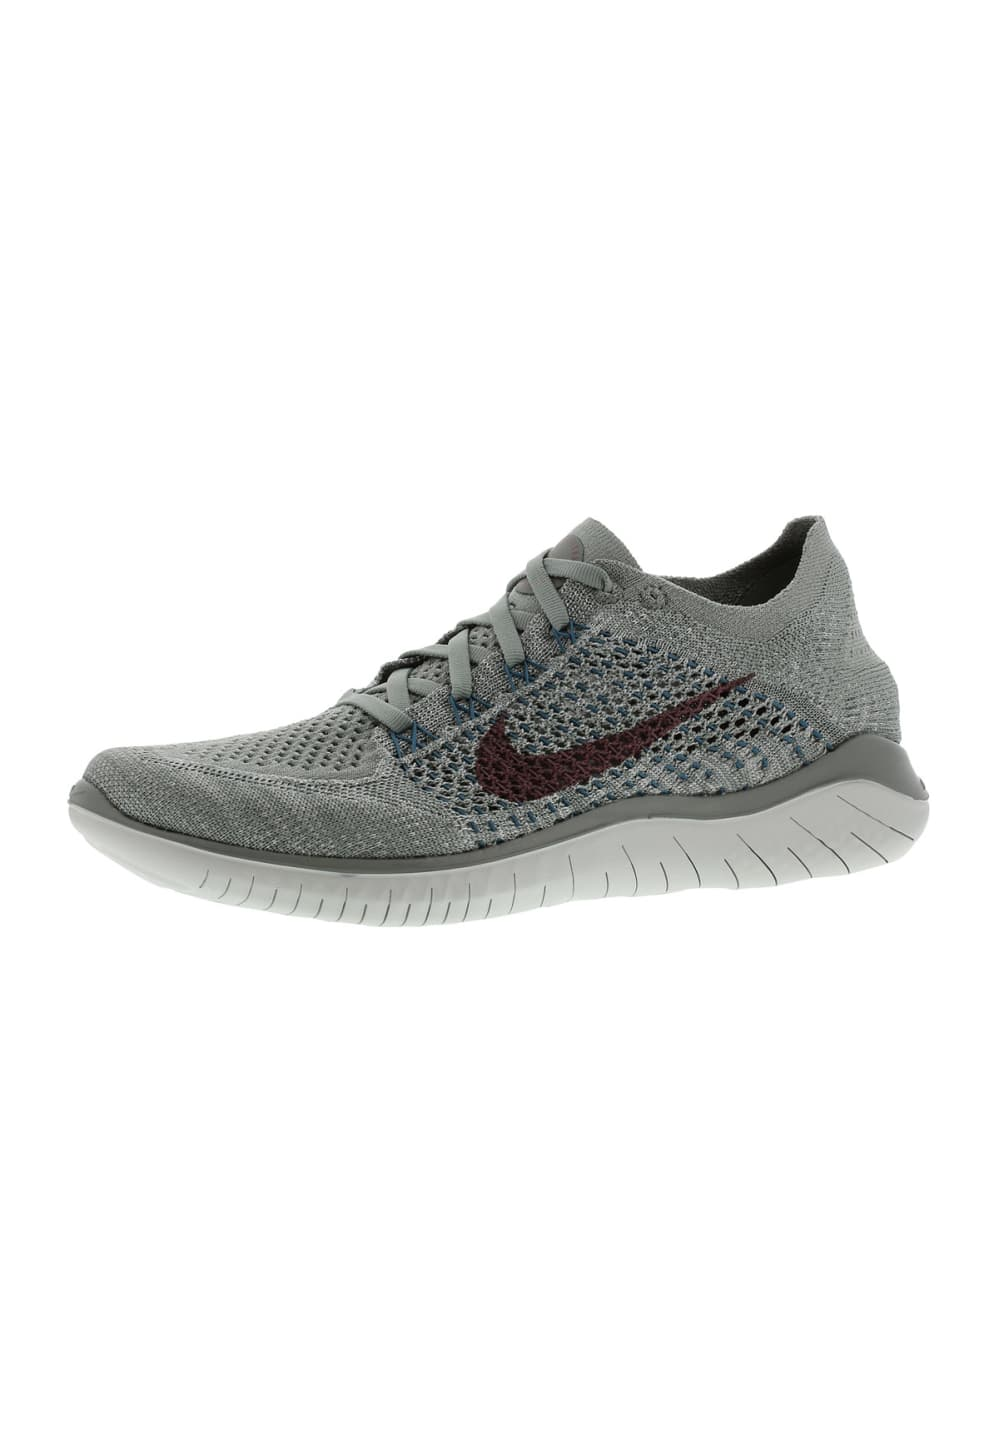 5401f61dce549 Nike Free RN Flyknit 2018 - Running shoes for Women - Grey